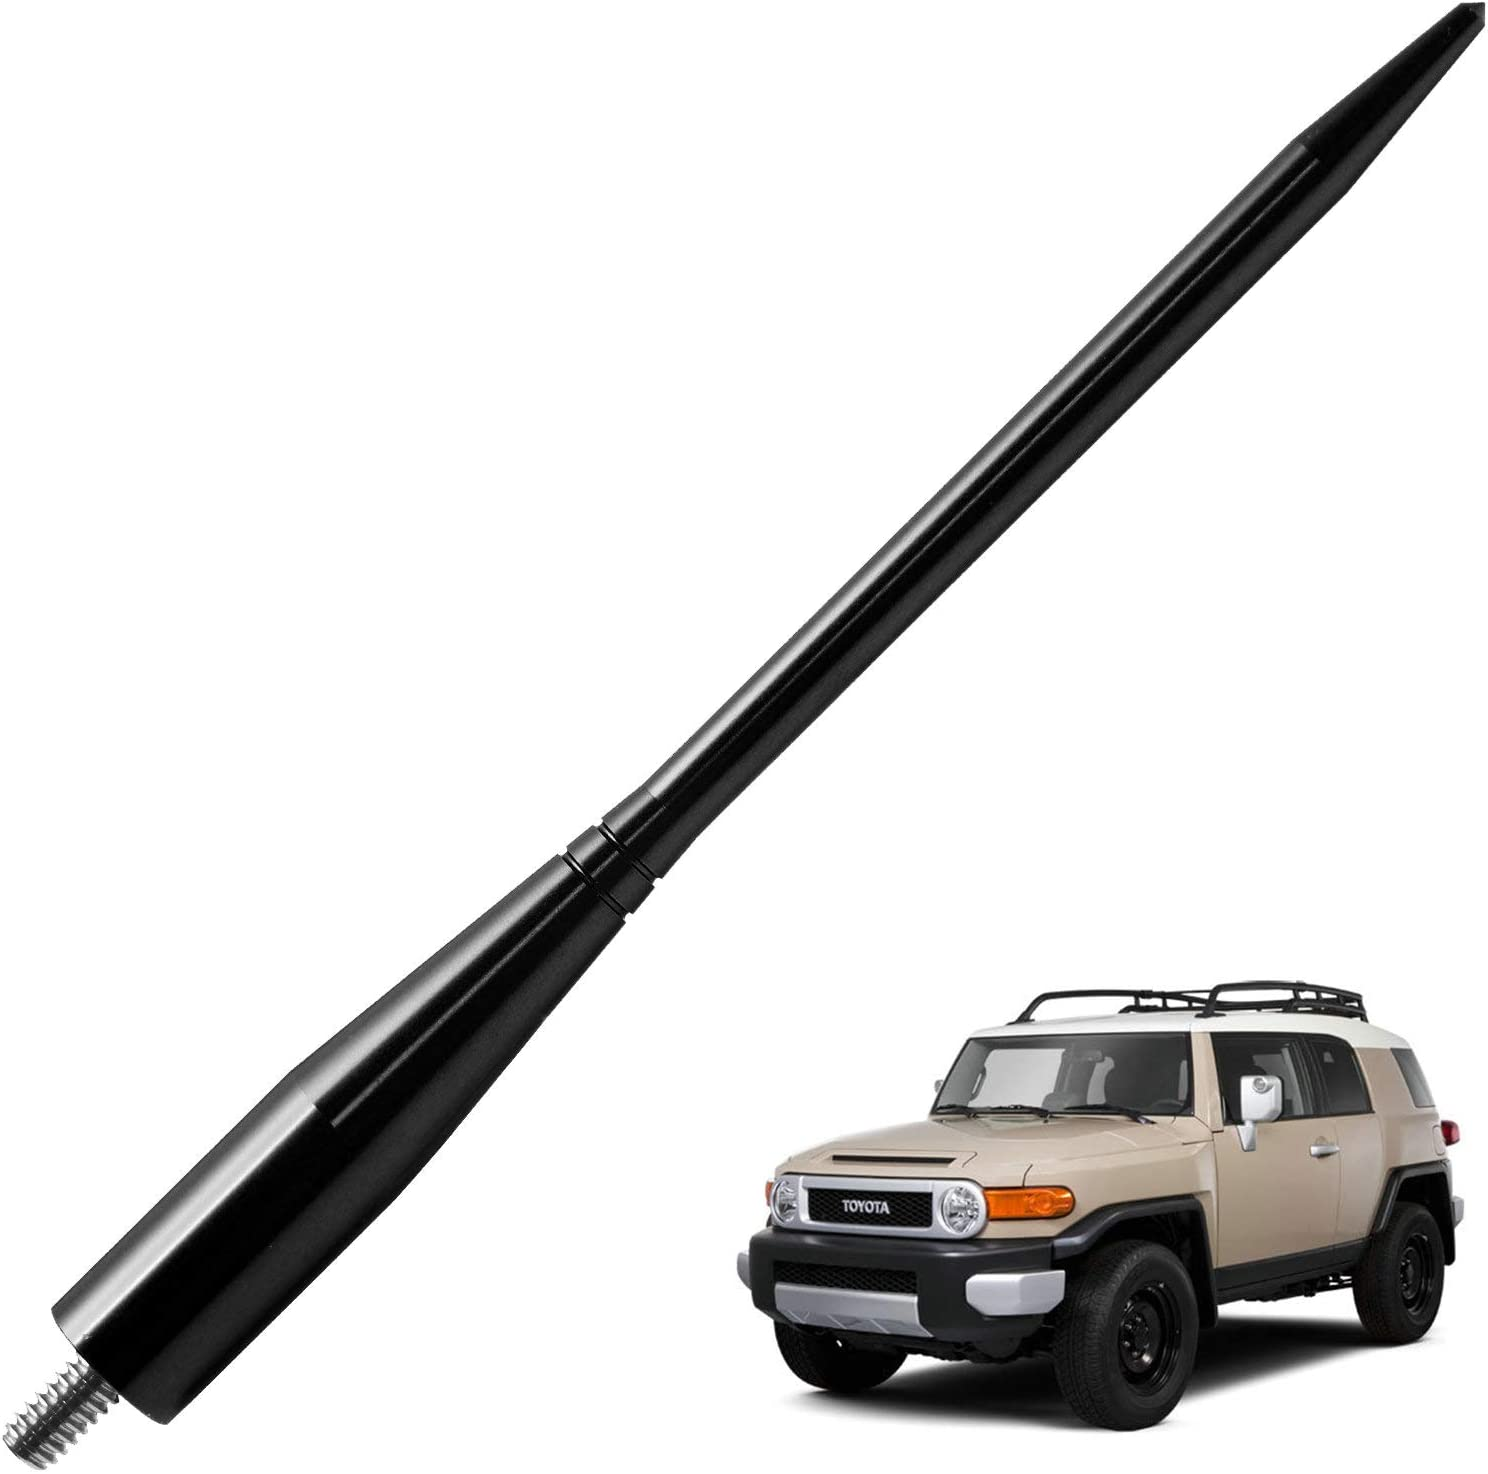 JAPower Replacement Antenna Compatible with Kia Soul 2010-2018 6.75 inches-Black